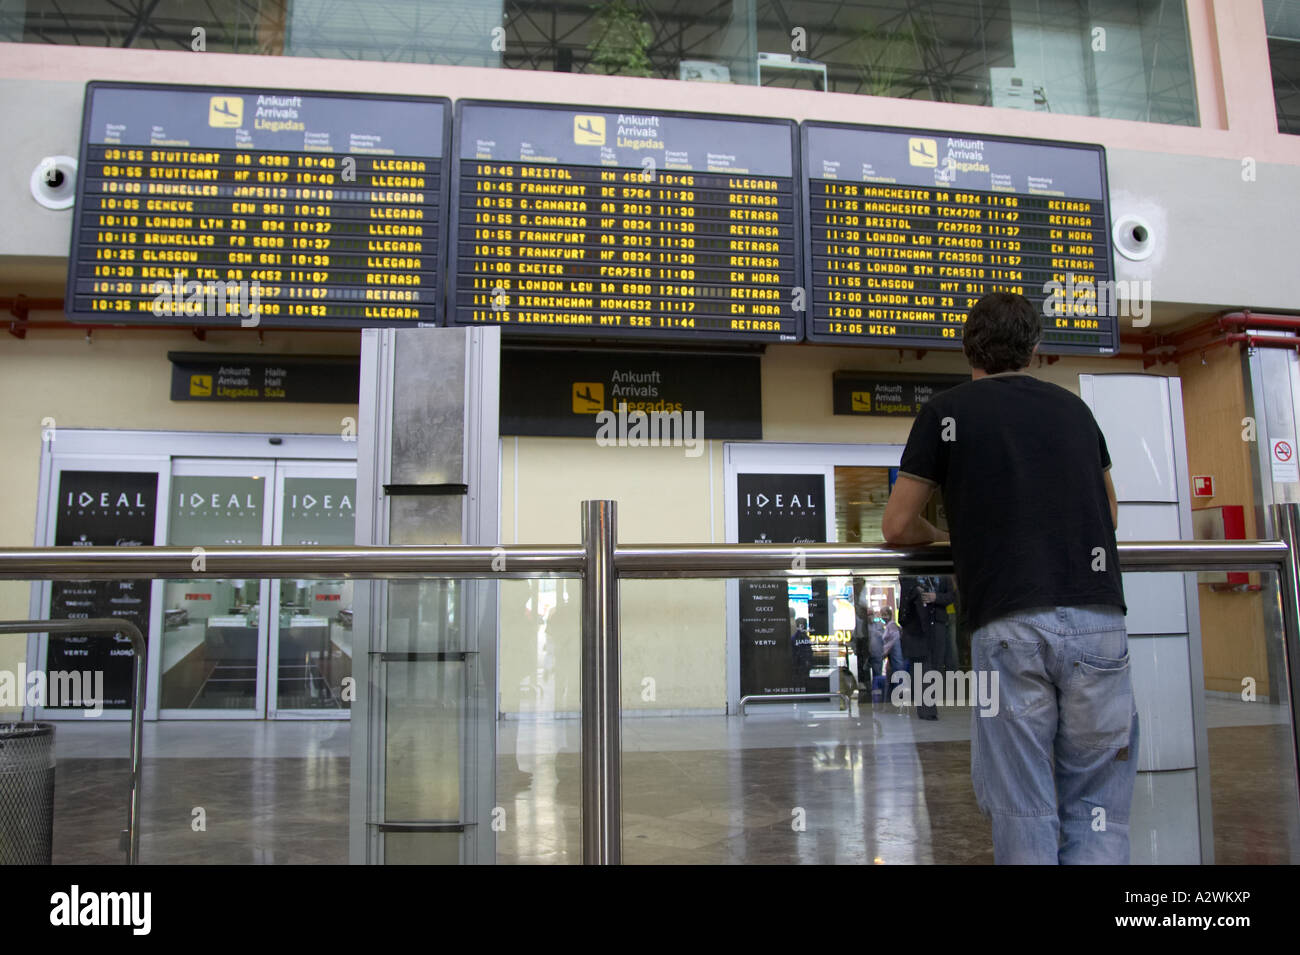 man waits in front of arrivals message board at Reina Sofia Sur TFS South Airport Tenerife Canary Islands Spain - Stock Image